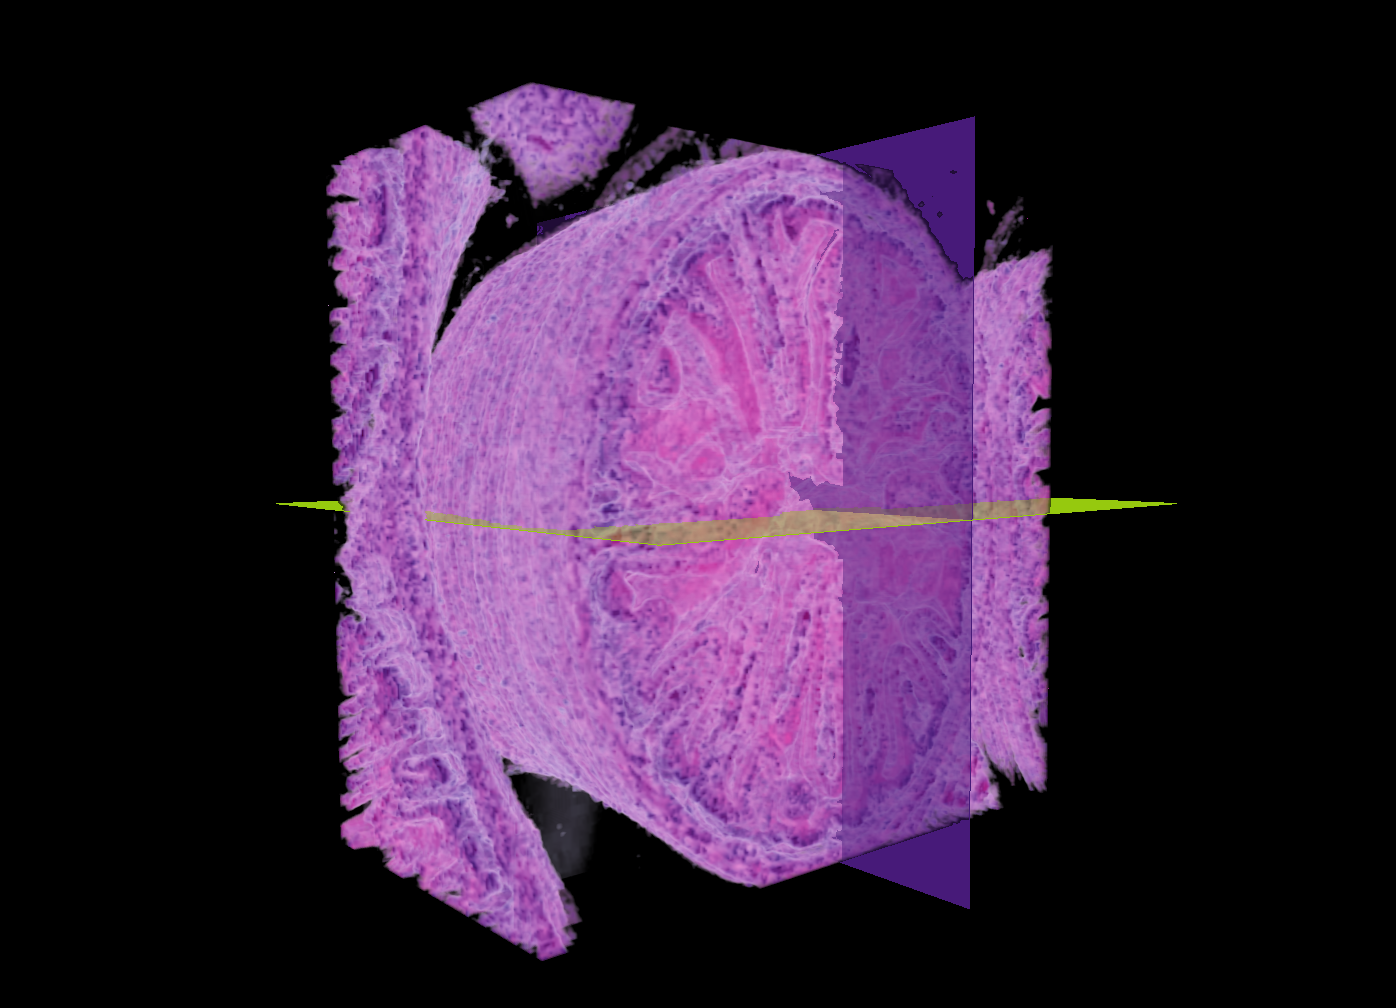 3D Reconstruction of the Colon of a   Mouse Embryo